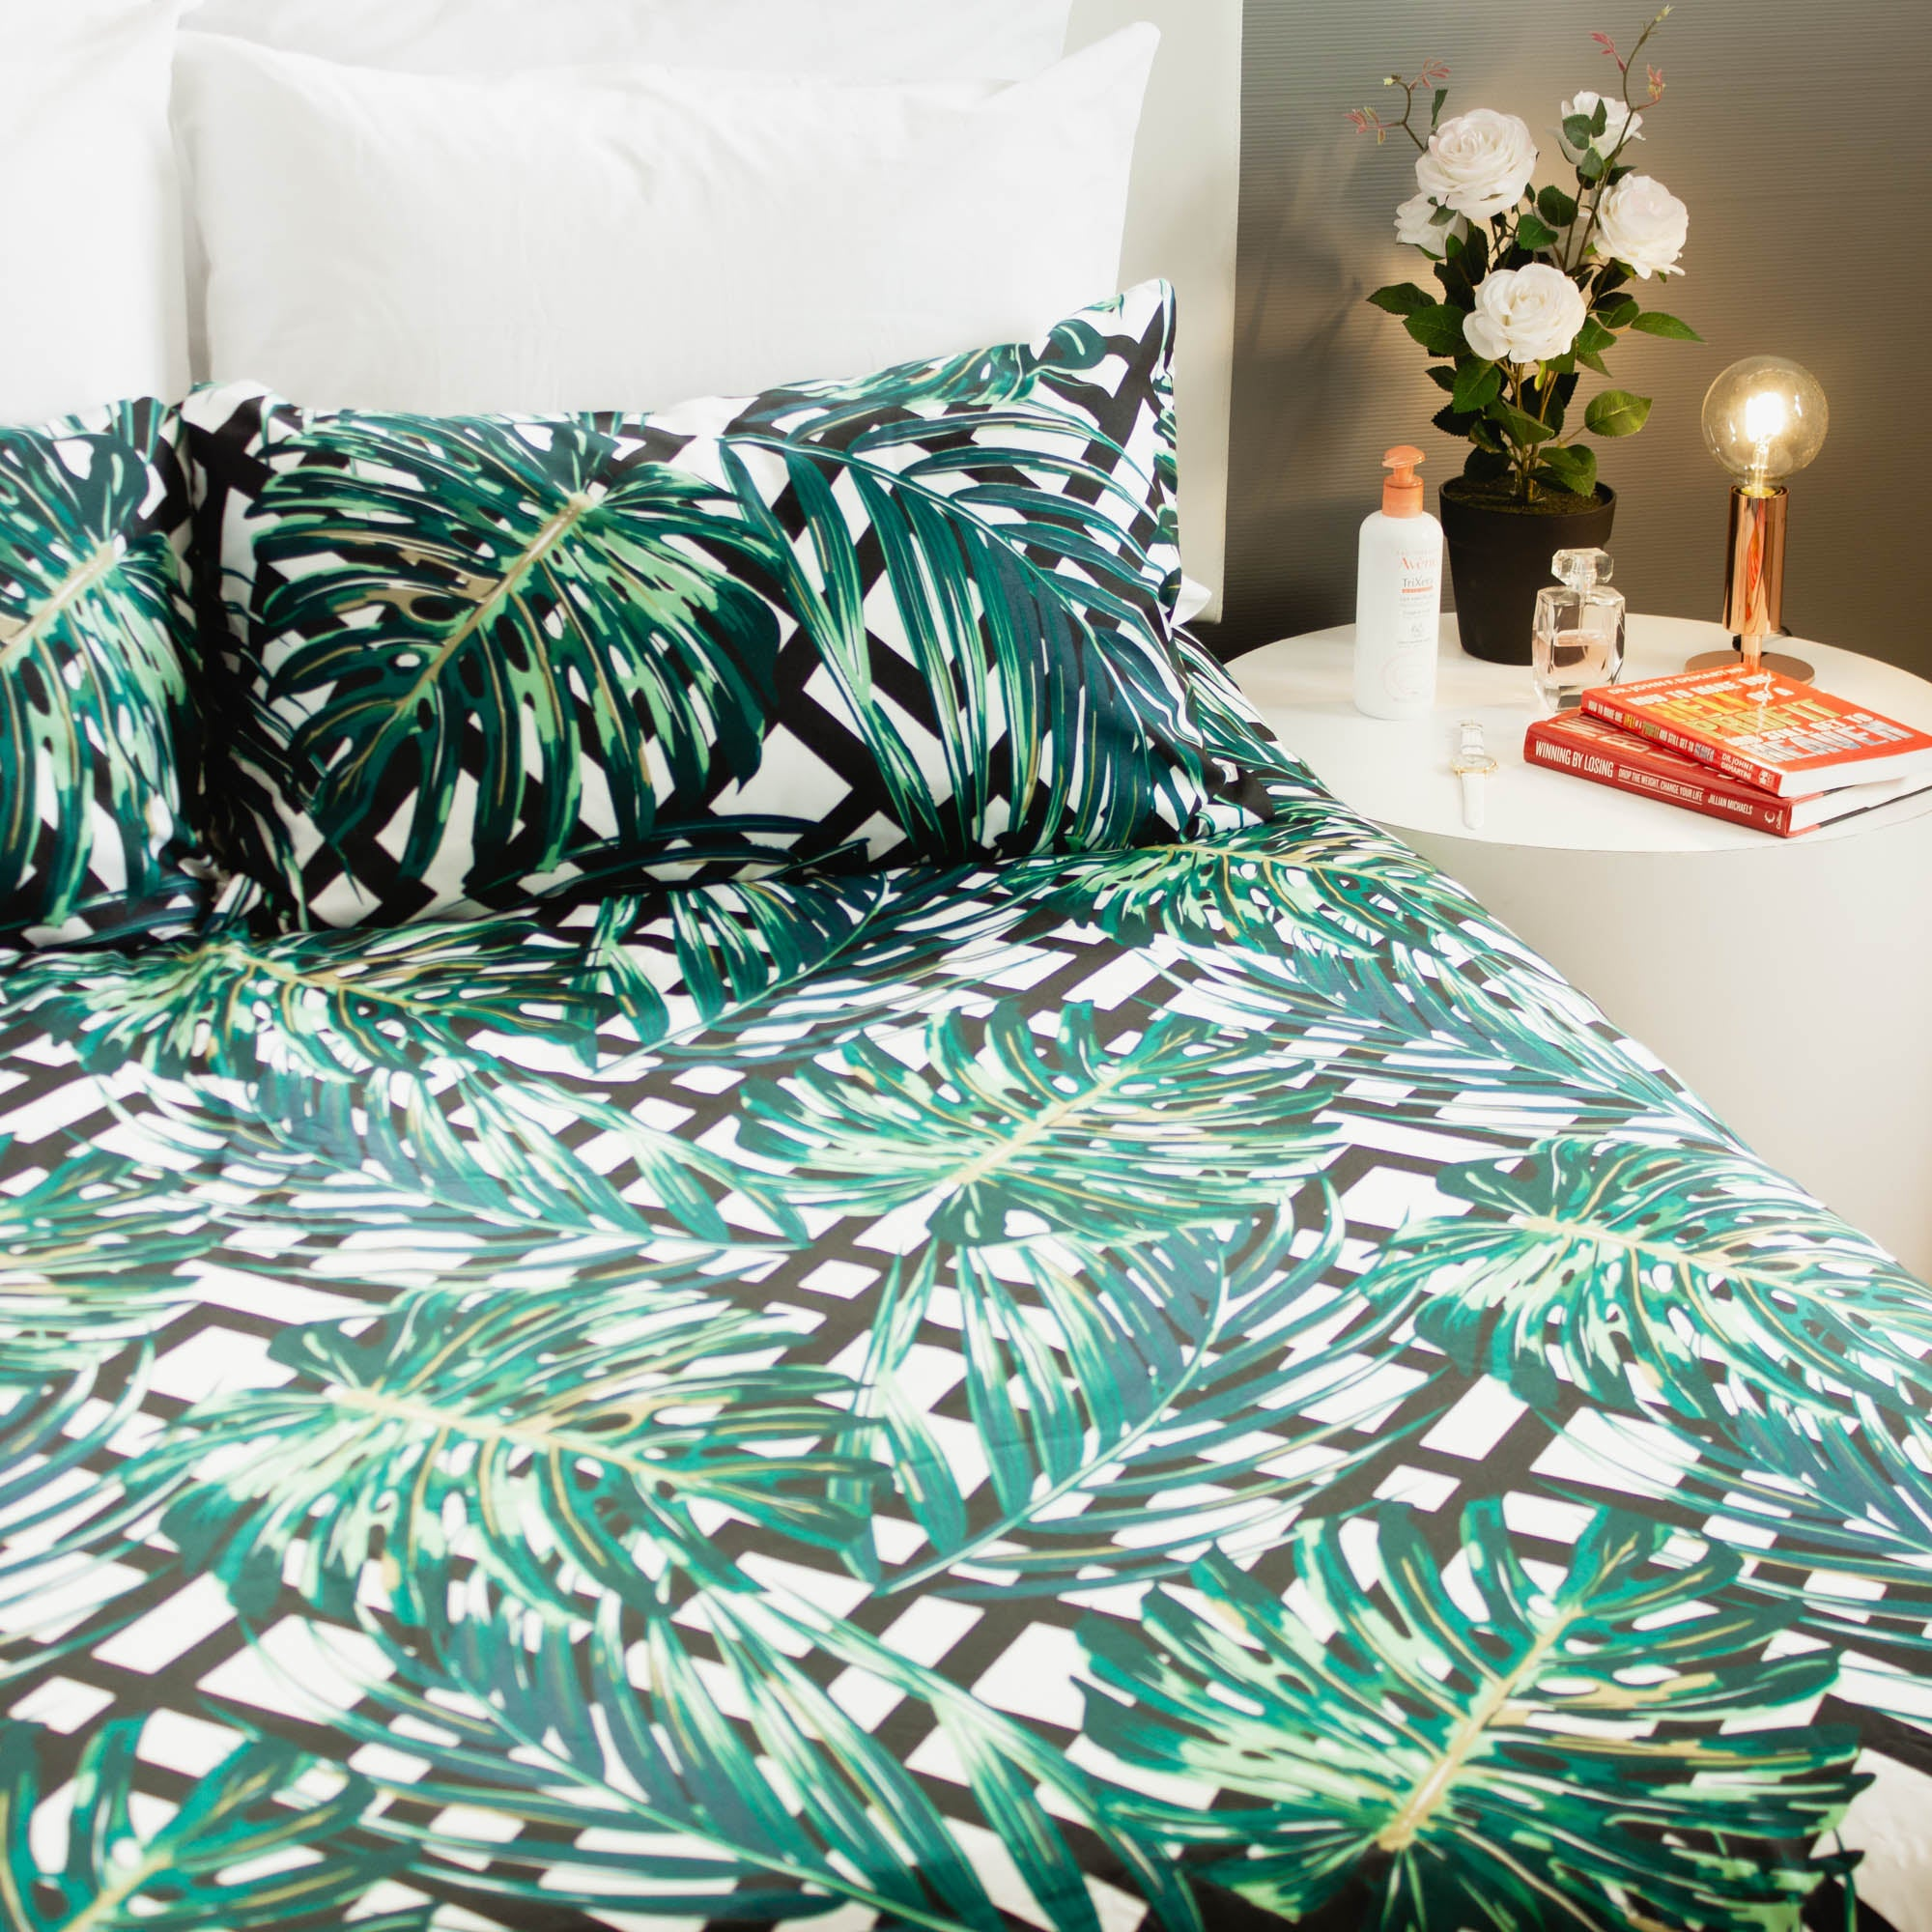 Duvet Cover Set - Bahamas - Queen